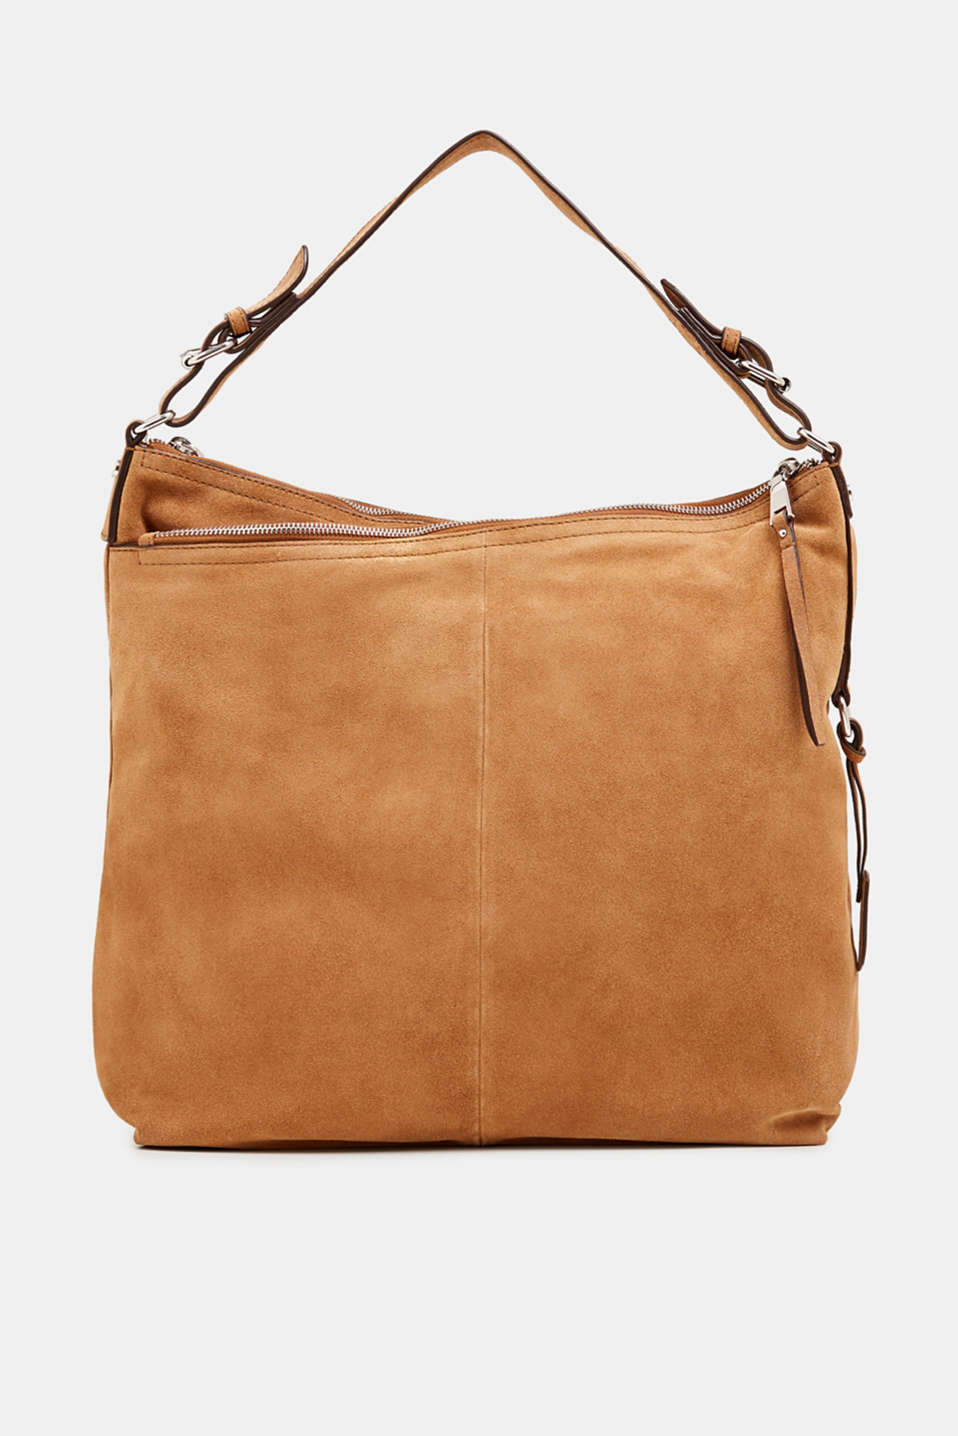 Esprit - Hobo Bag aus Leder